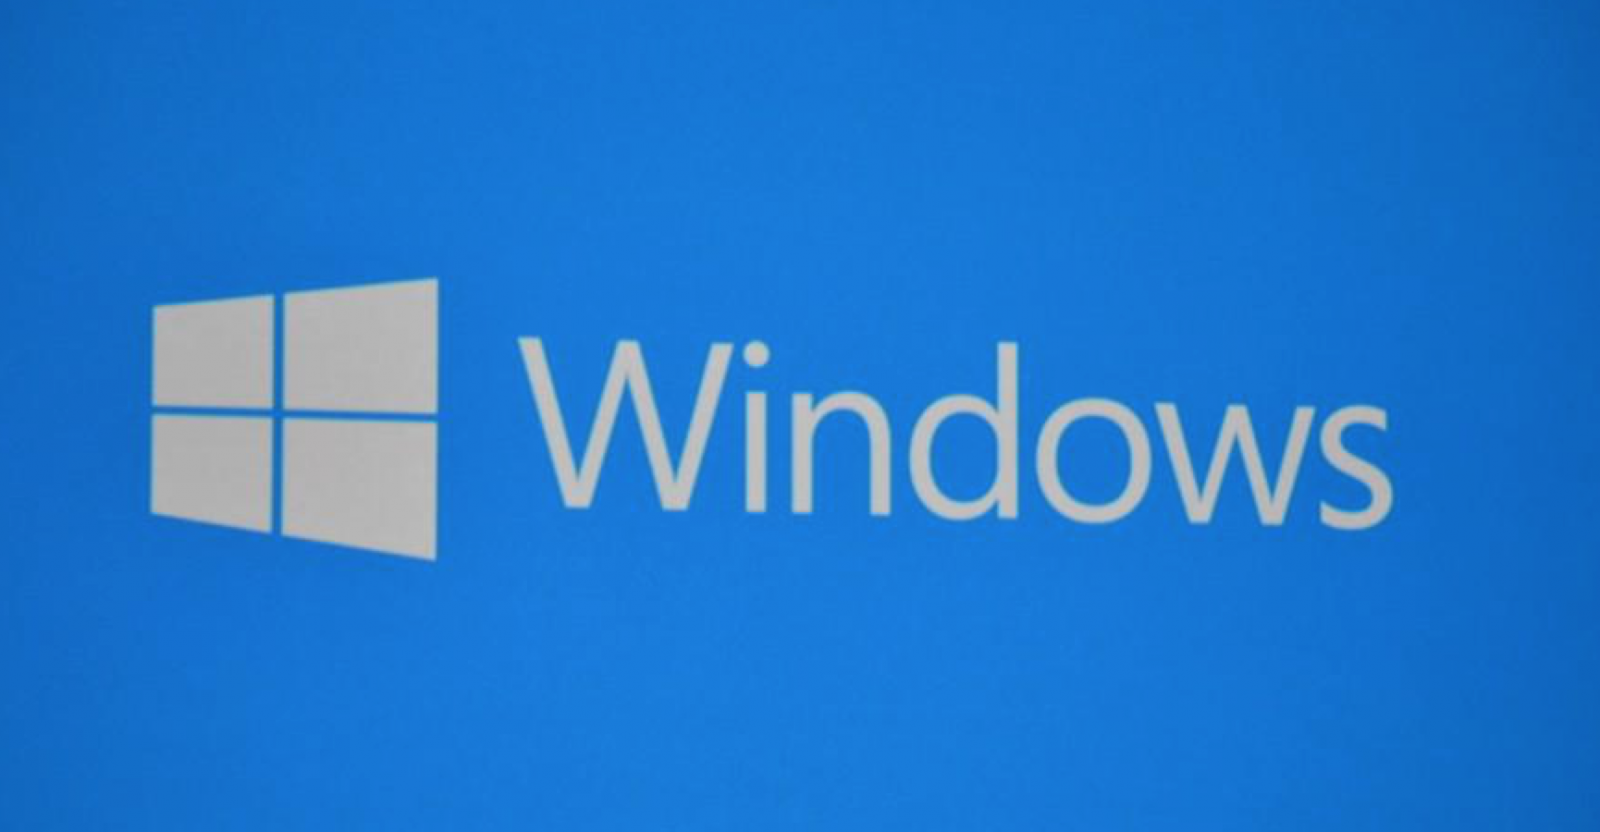 Build 2015 Windows